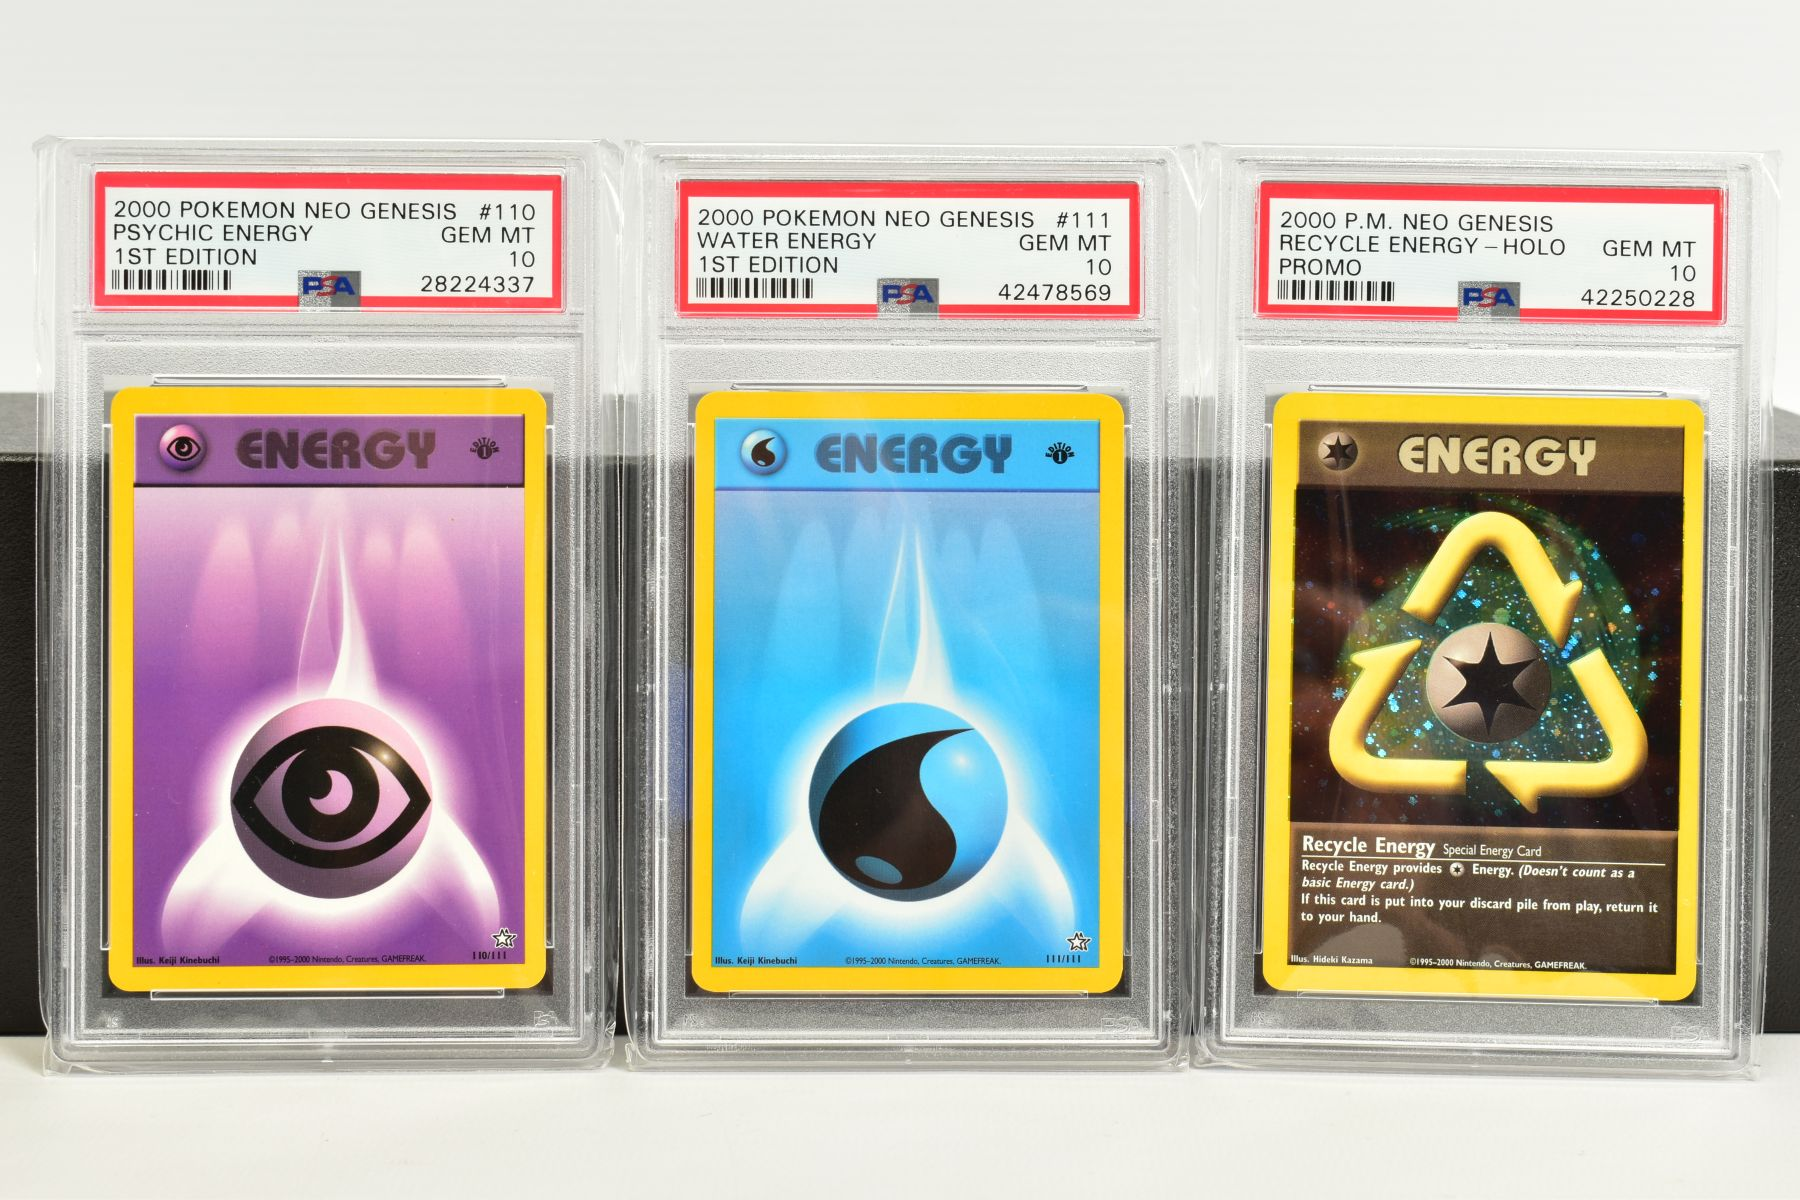 A QUANTITY OF PSA GRADED POKEMON 1ST EDITION NEO GENESIS SET CARDS, all are graded GEM MINT 10 and - Image 24 of 24